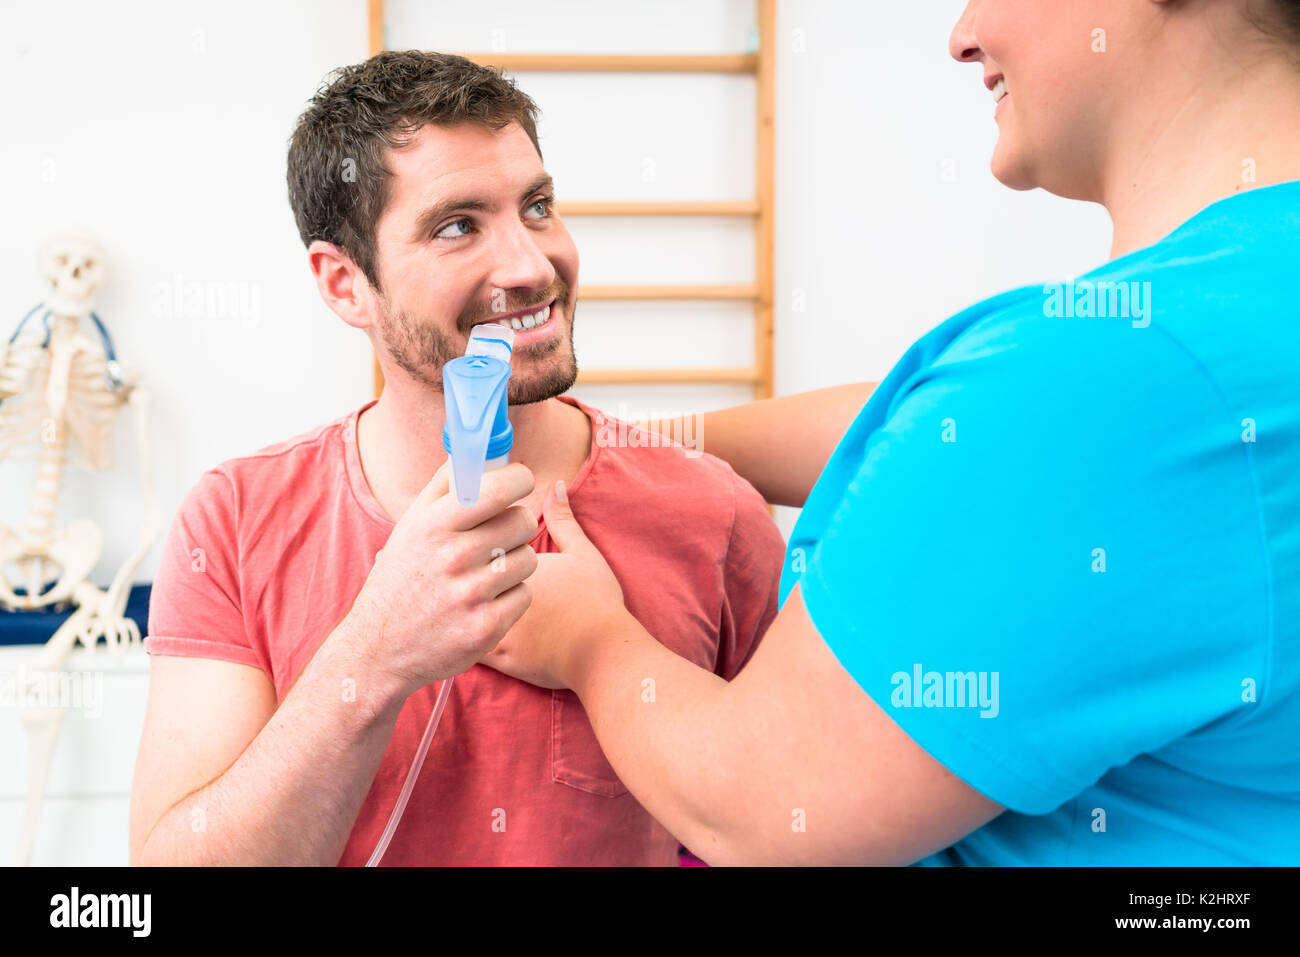 Man taking pulmonary function test with mouthpiece in his hand - Stock Image